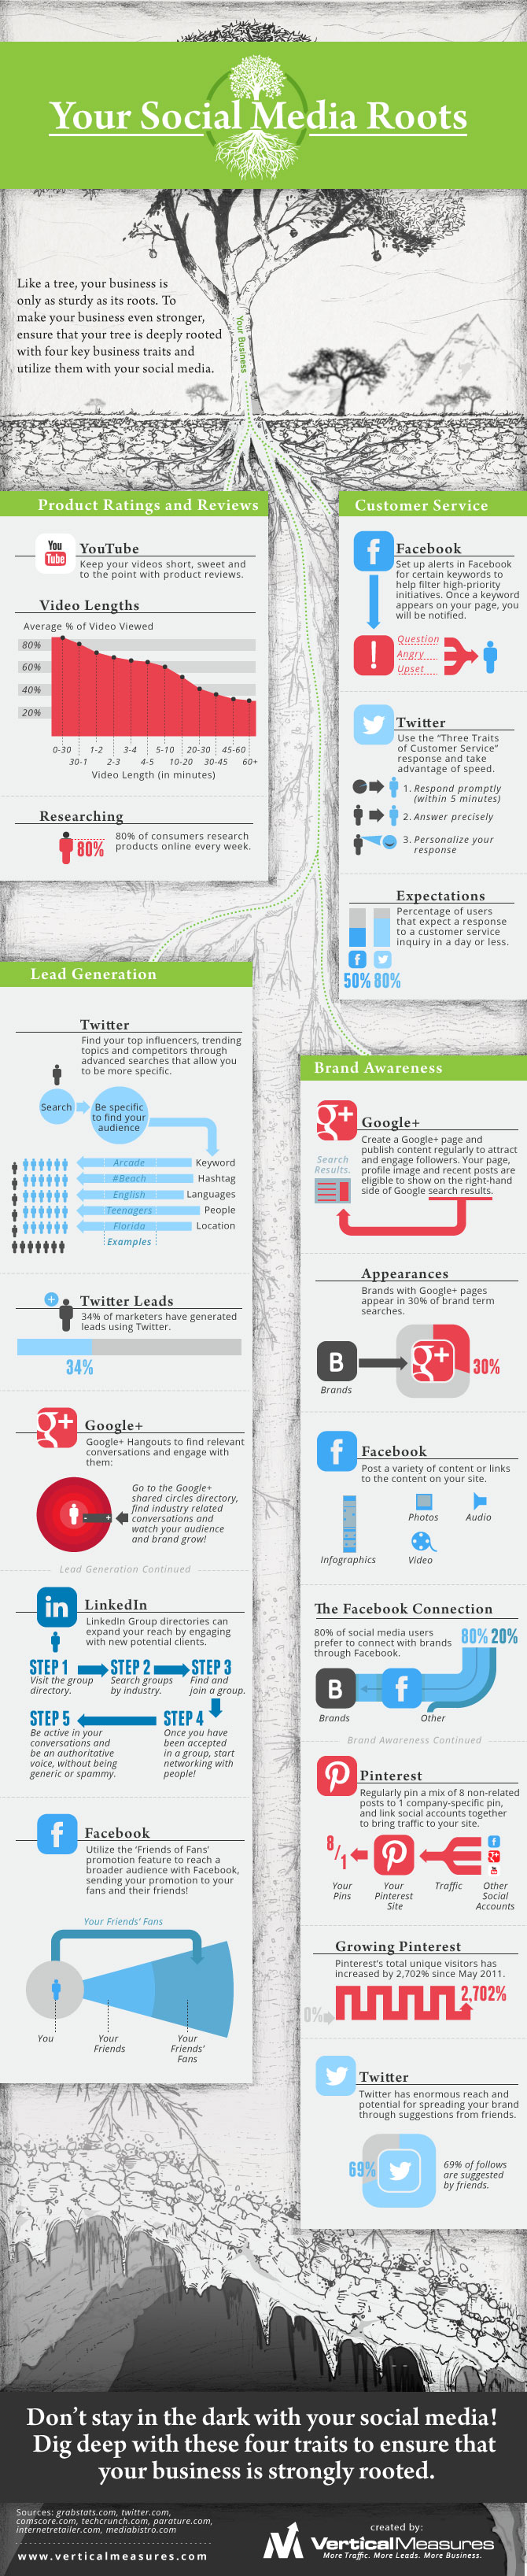 Your Social Media Roots